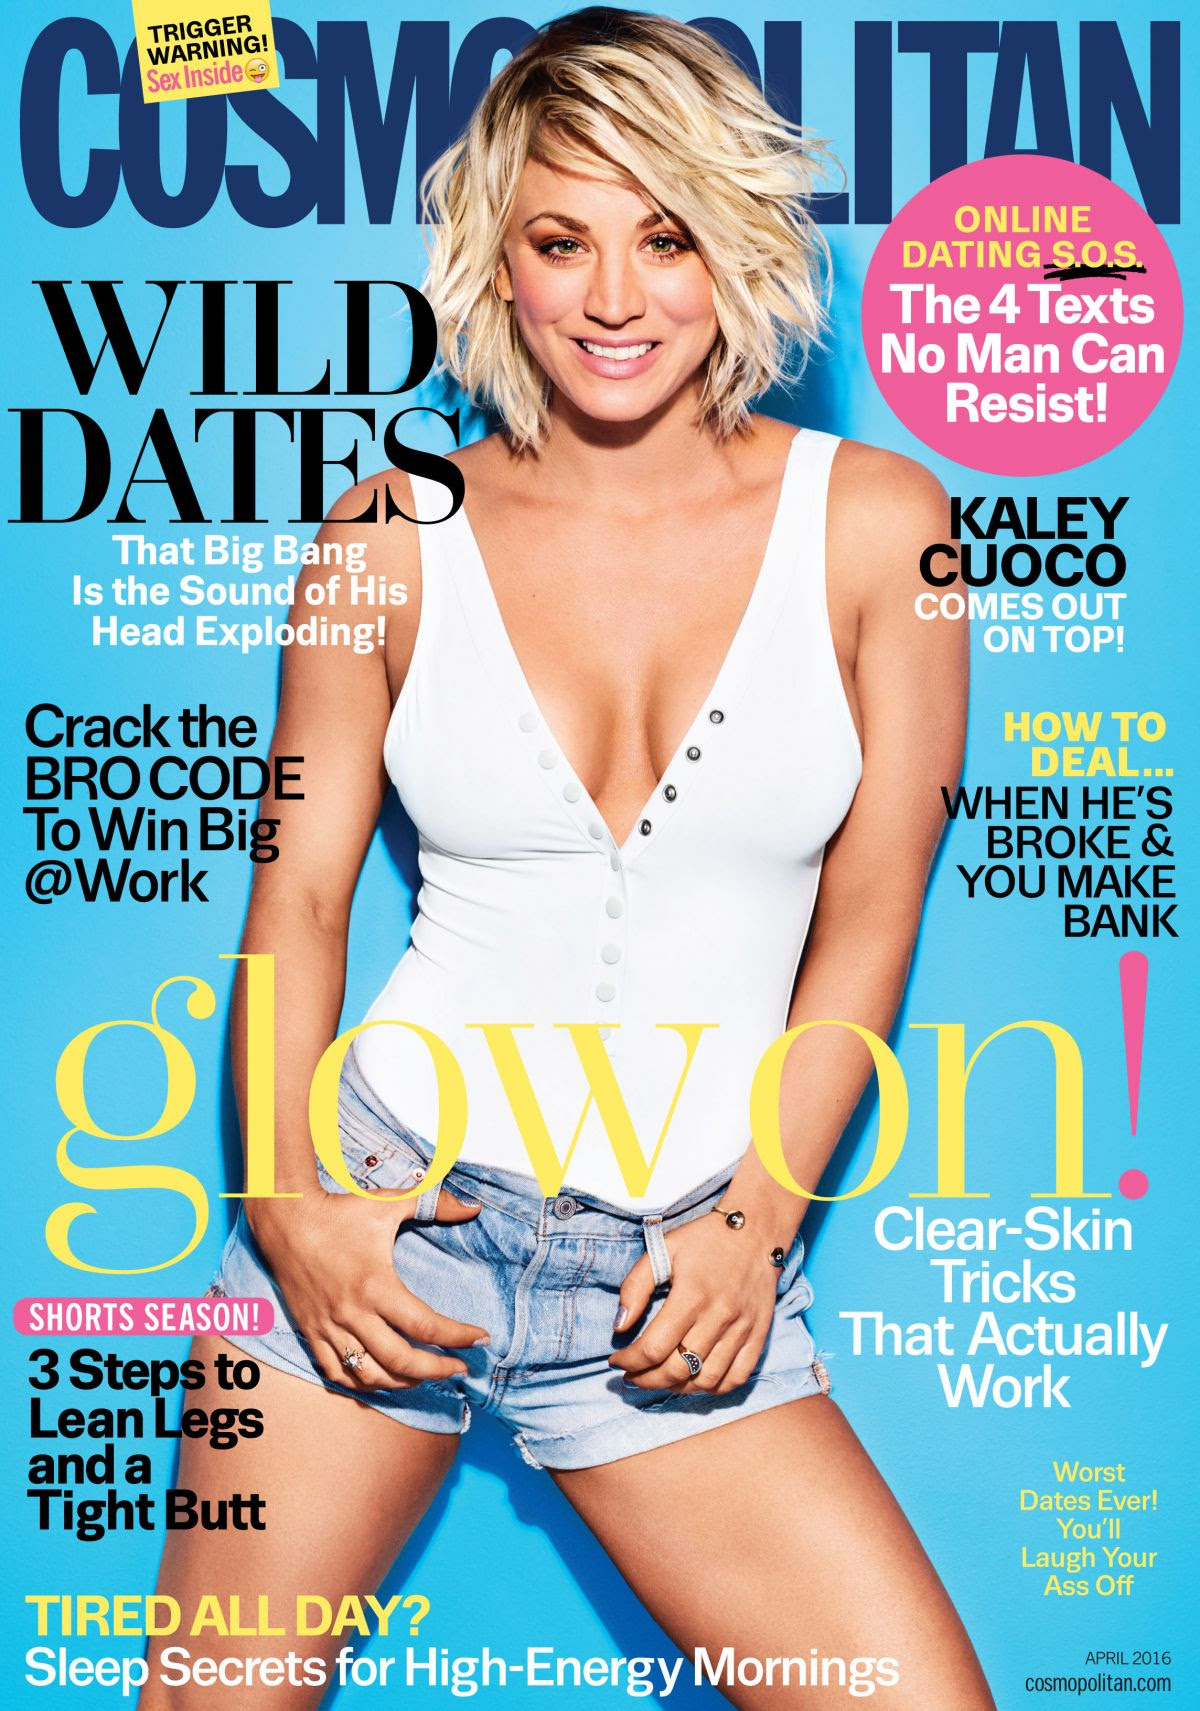 KALEY CUOCO in Cosmopolitan Magazine, April 2016 Issue